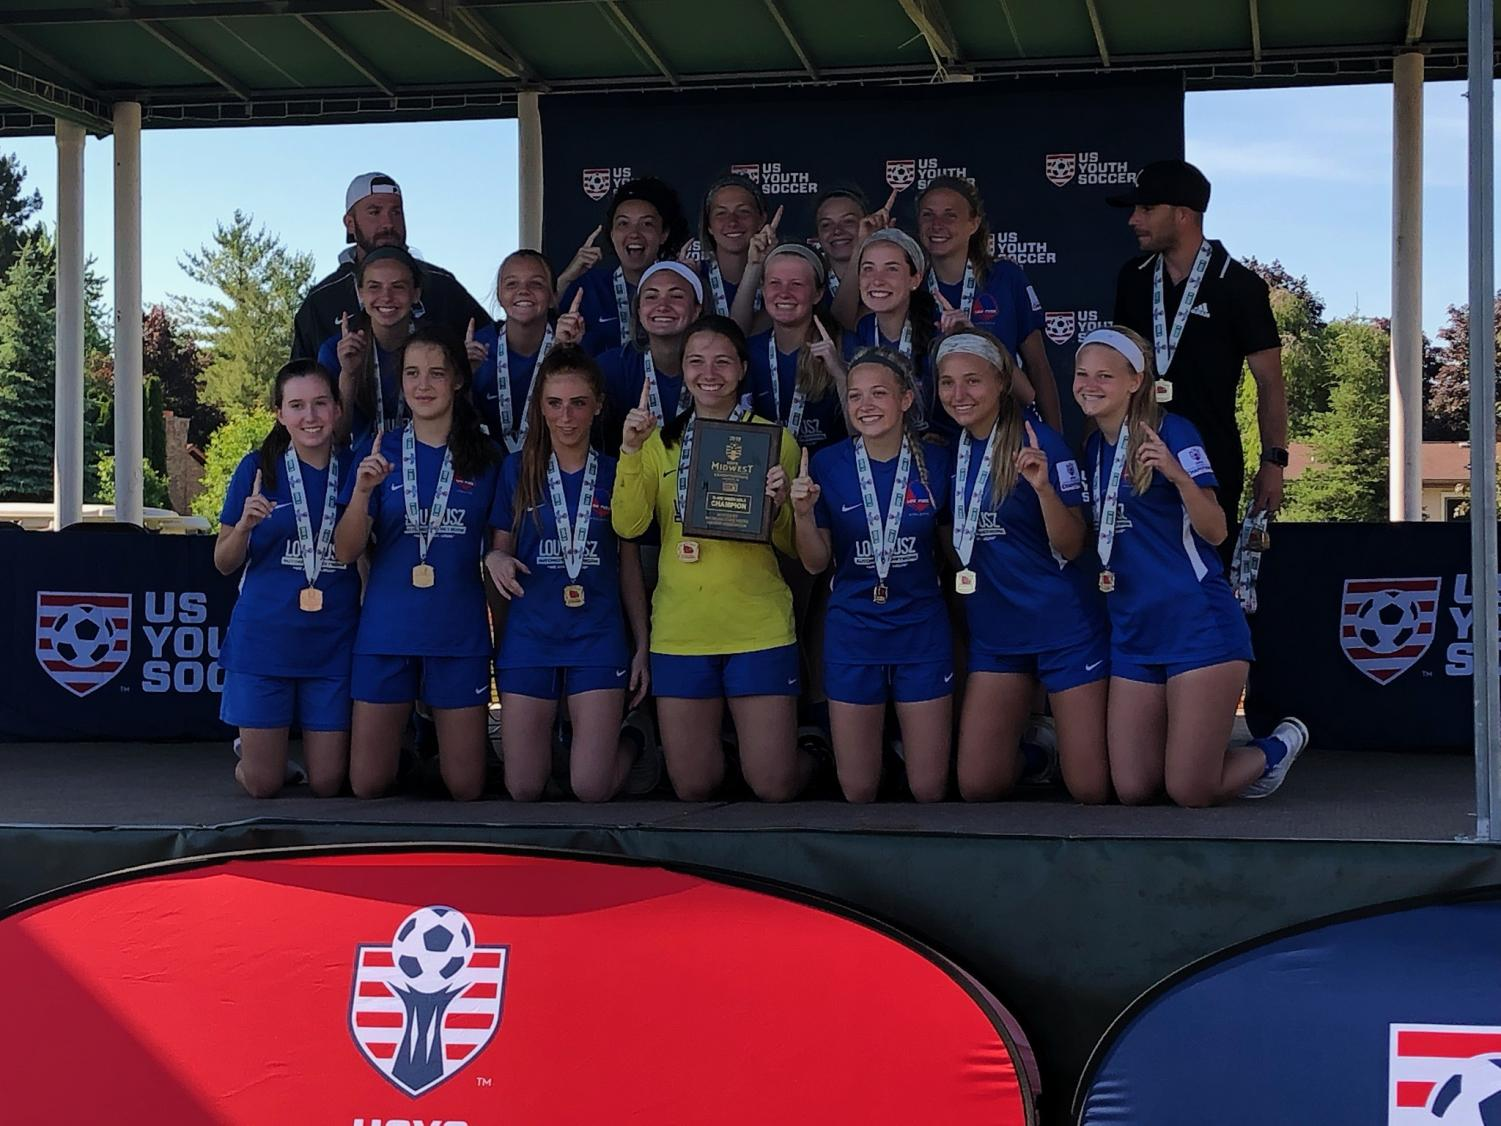 "Posing with her team on the champions stage, sophomore Ella Roesch holds one finger up, indicating that her Lou Fusz Blue team won first place in the US Youth Soccer Midwest Regional Championships June 26 in Saginaw, Mich. Roesch's team beat out teams from 15 other states, all located in the Midwest, beating Iowa Rush 3-1 in the finals. ""The first goal of the game was my favorite part because I got the assist. The one who scored was one of my good friends on the team and ran right to me. We practice our celebrations, so we showed off to our parents. It was a lot of fun, but after celebrating, it was back to game time,"" Roesch said."